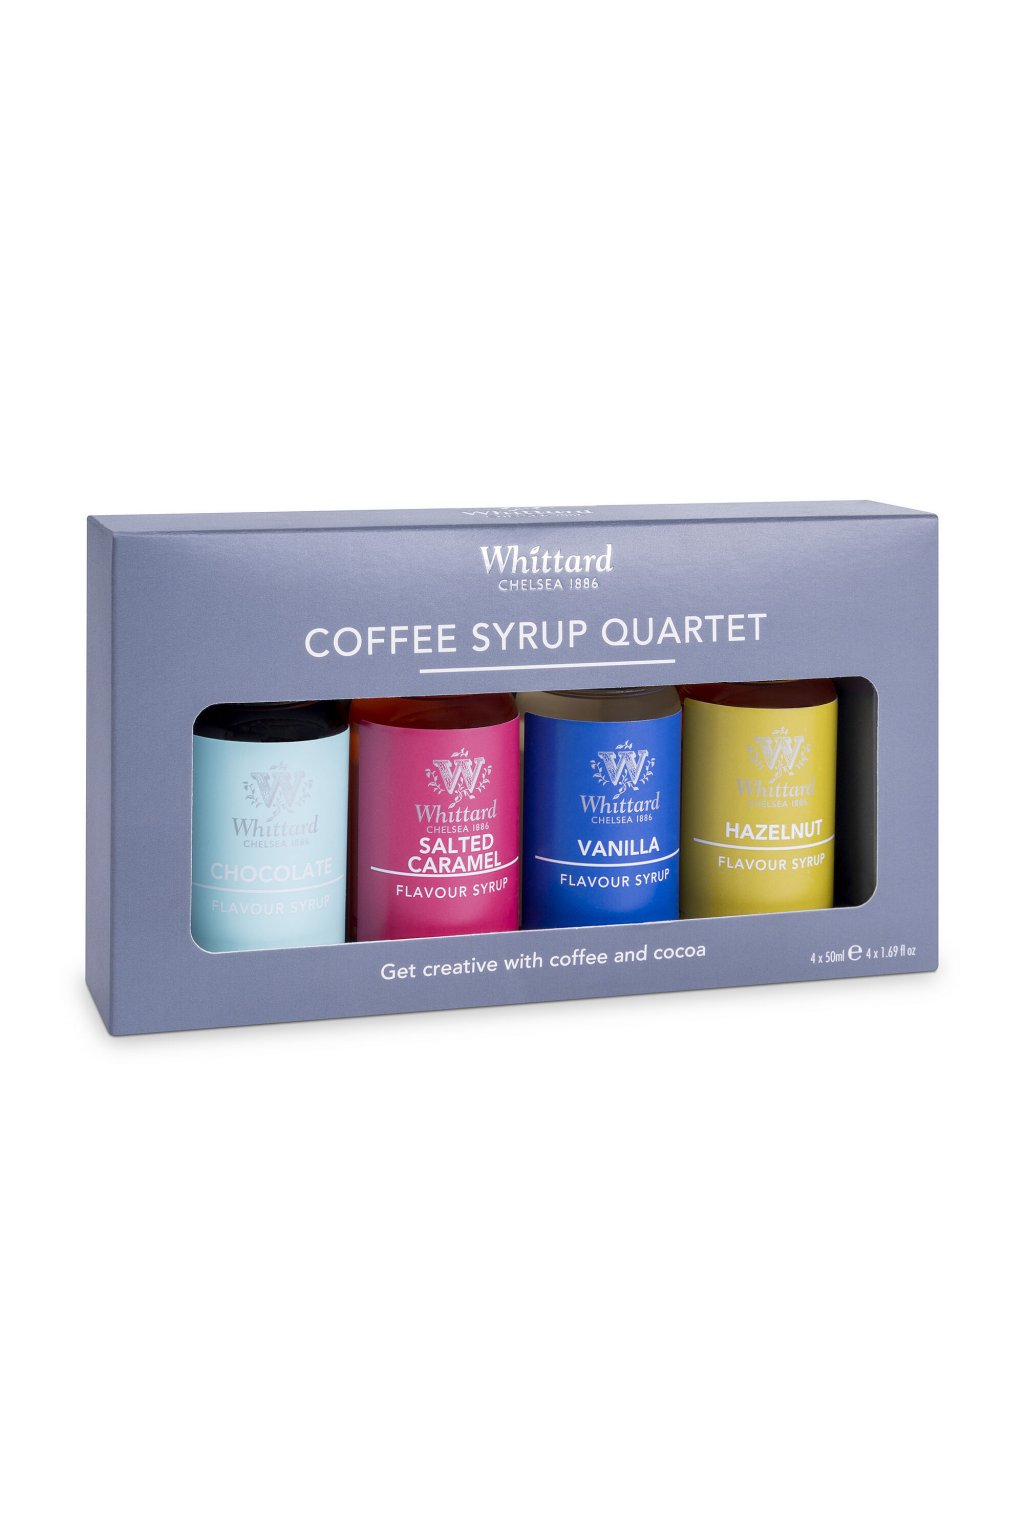 343731 COFFEE SYRUP GIFT SET 1